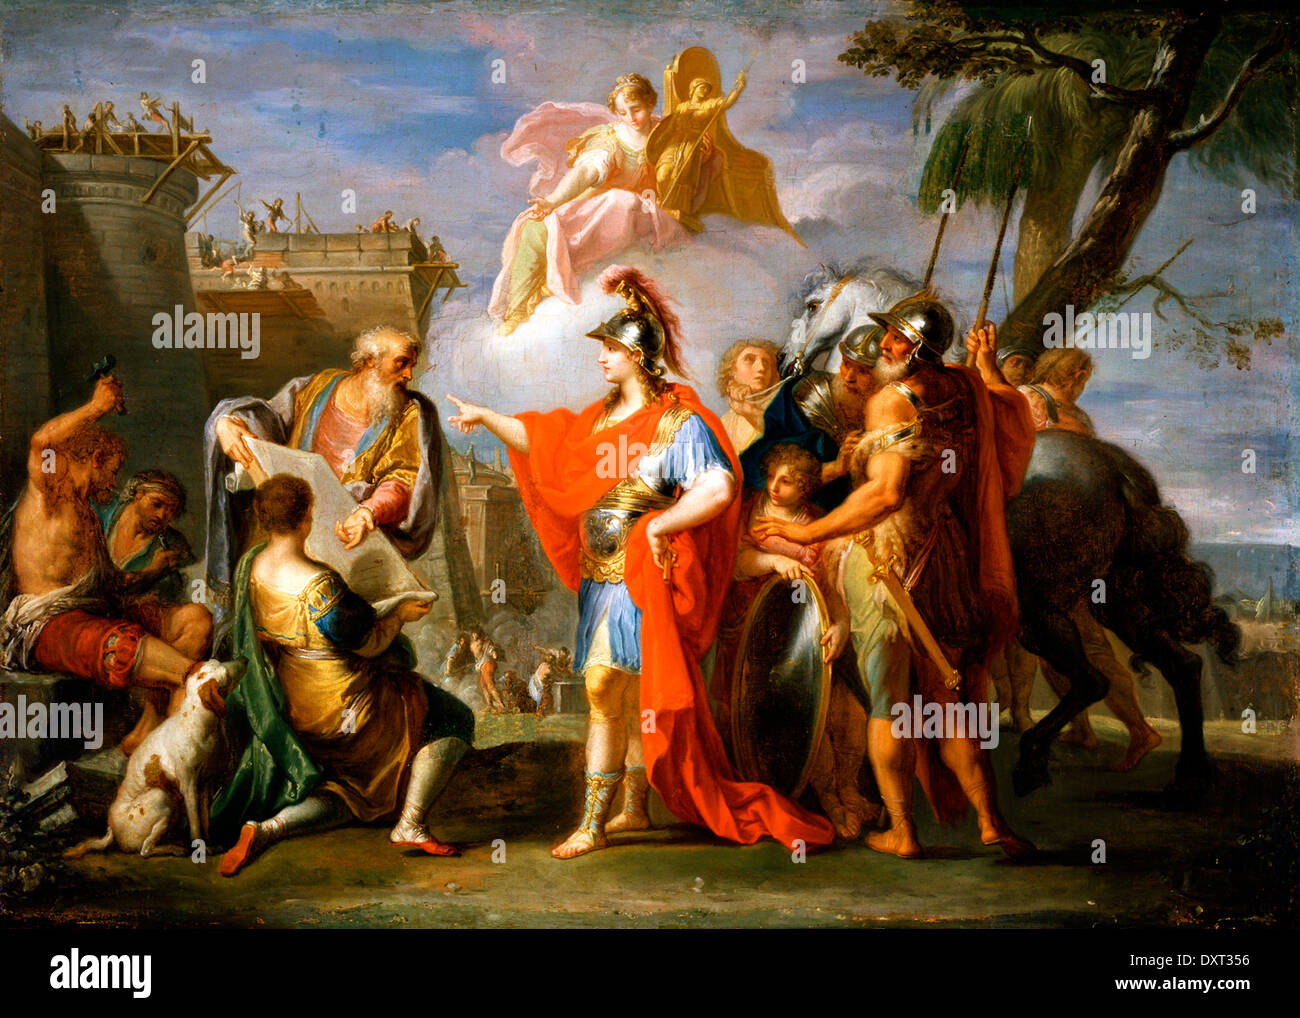 Alexander the Great Founding Alexandria - Stock Image